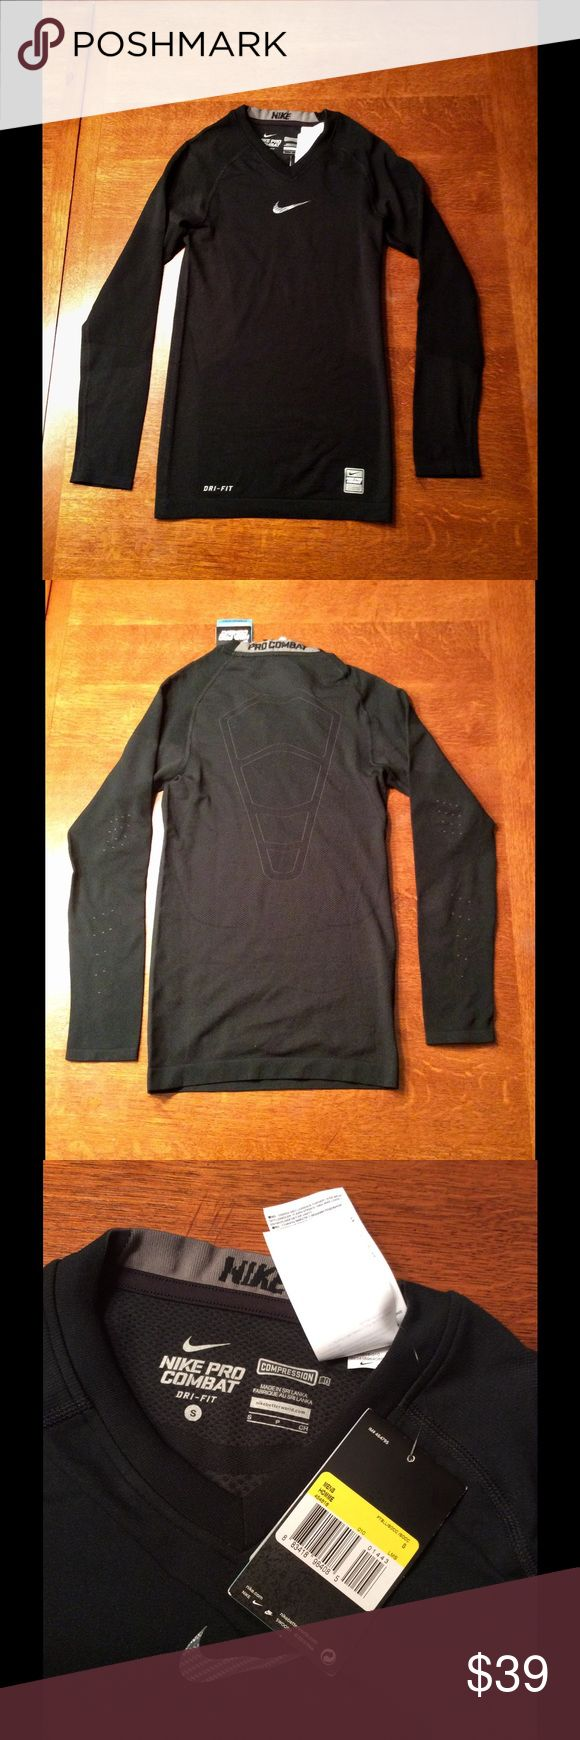 Men's pro combat Nike compression shirt. NWT Brand new, nwt men's Nike pro combat long sleeved compression shirt in size small.  Dri fit fabric technology.  Hypercool series.  Strategic meshing for maximum ventilation.  73% polyester, 21% nylon and 6% elastane.  Flat across chest measures 14 in.  Top of shoulder to bottom measures 25.5 inches. Nike Shirts Tees - Long Sleeve